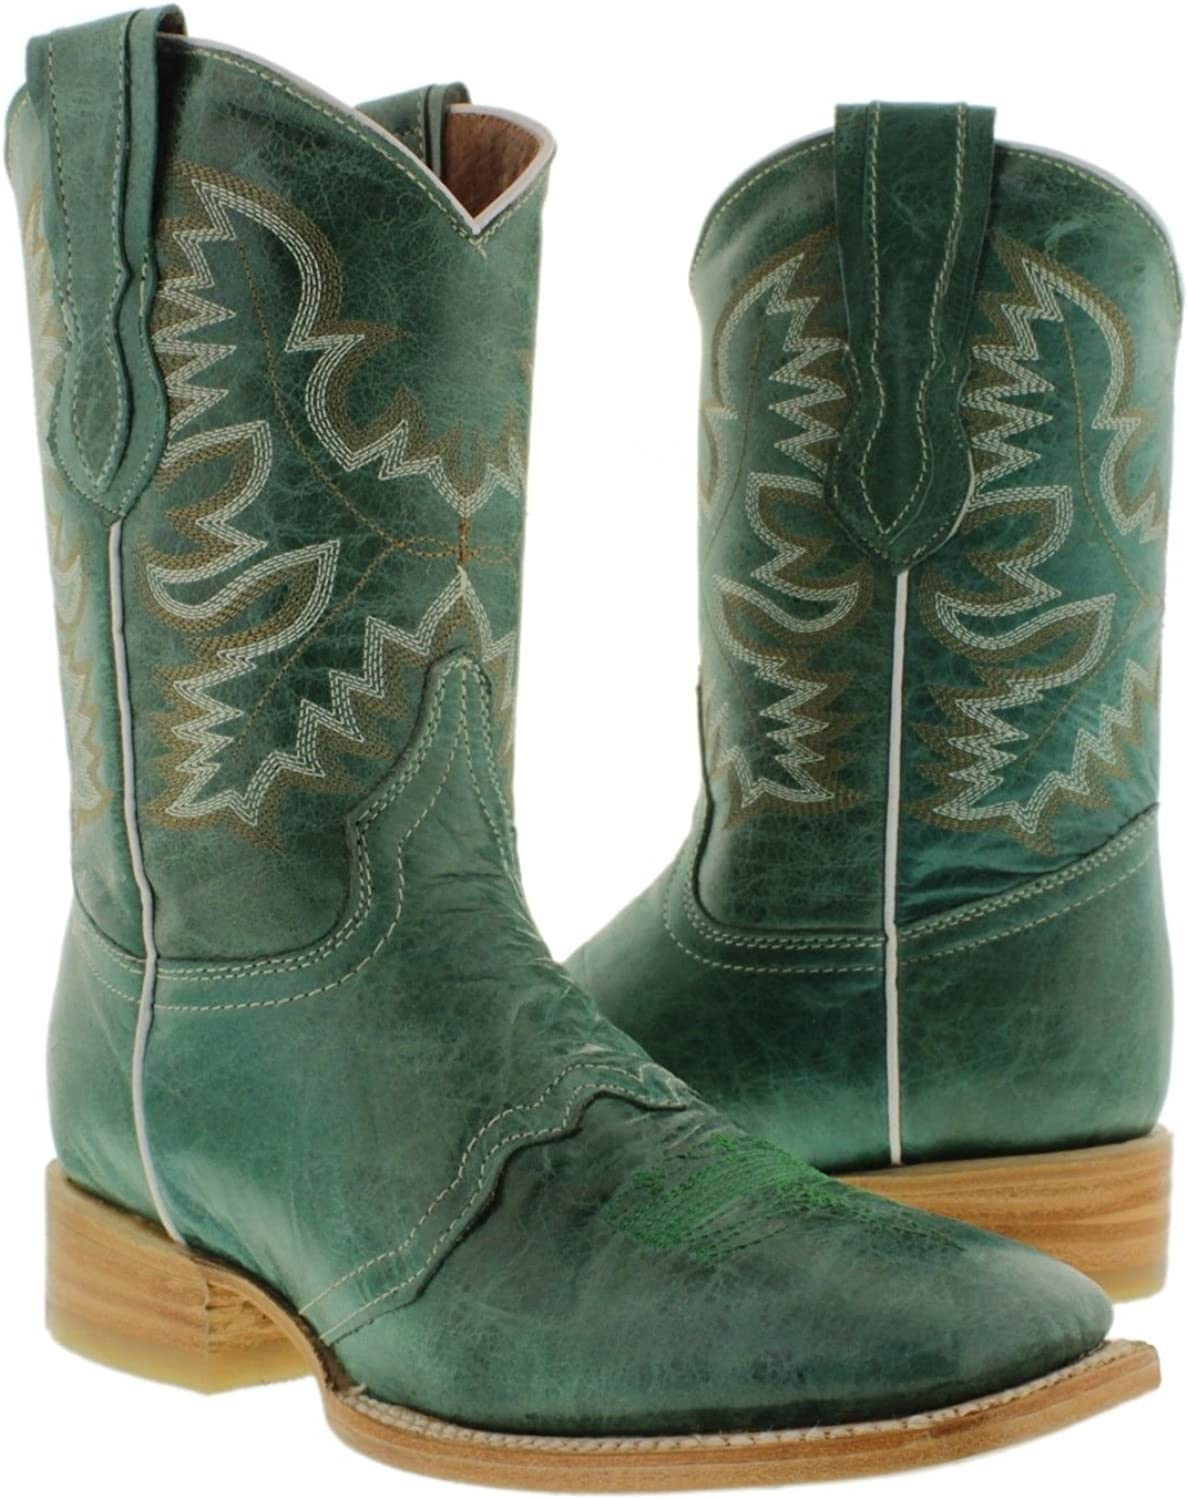 Women's Turquoise Mid Calf Leather Boots National uniform 35% OFF free shipping Cowboy Square T Western